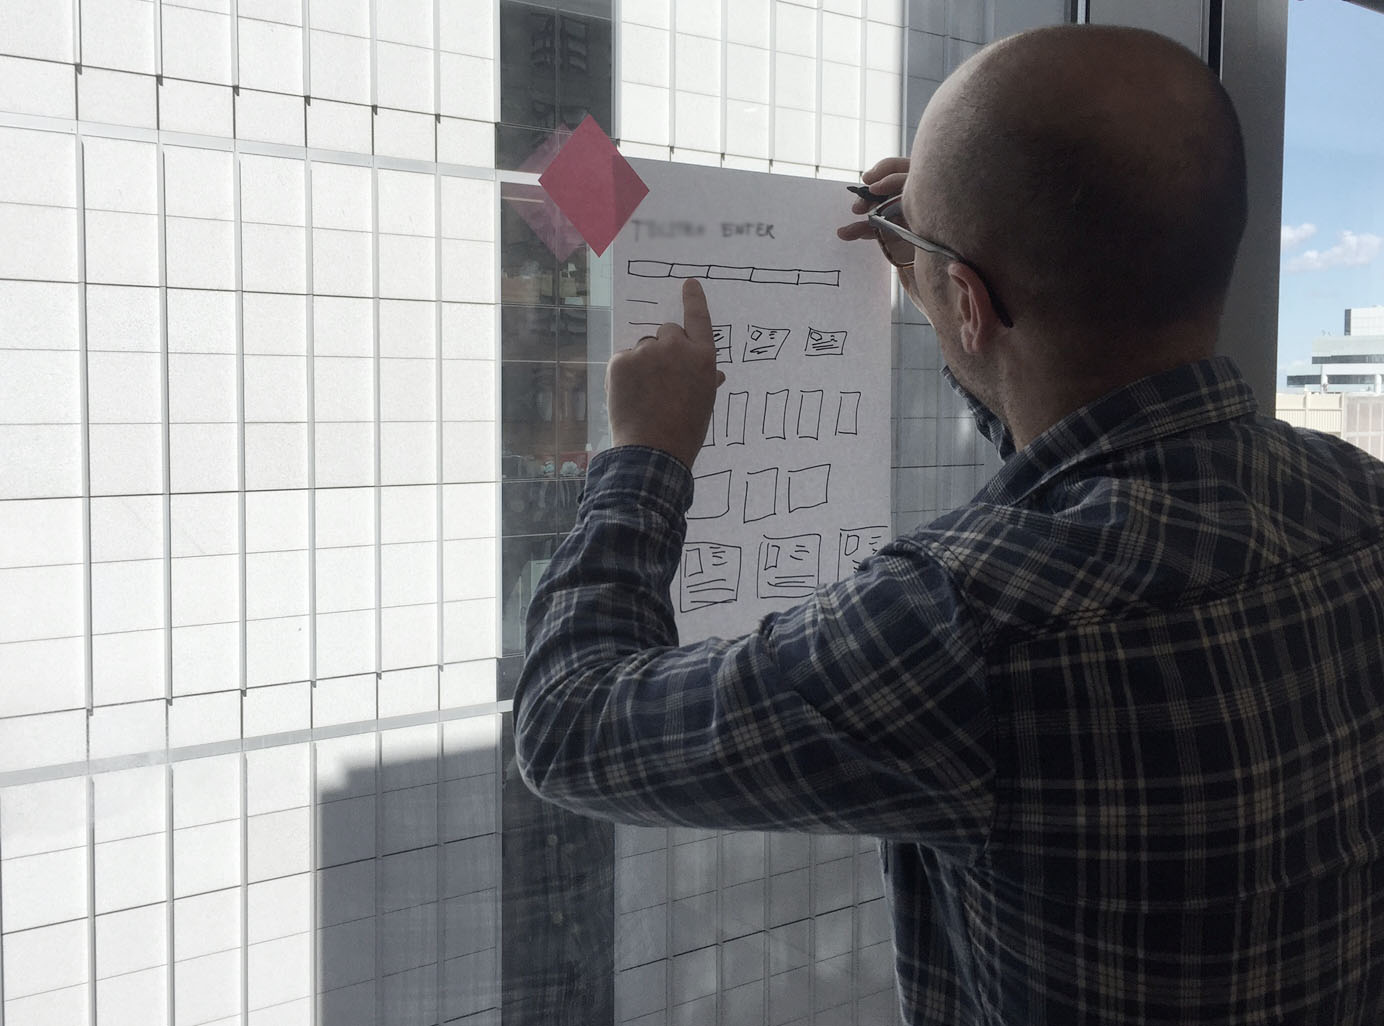 Collaborating, testing and iterating. - As a group, we did co-design sketching sessions, content brainstorming and a product thinking activity.I also ran a weekly design review to collect feedback as we progressed.